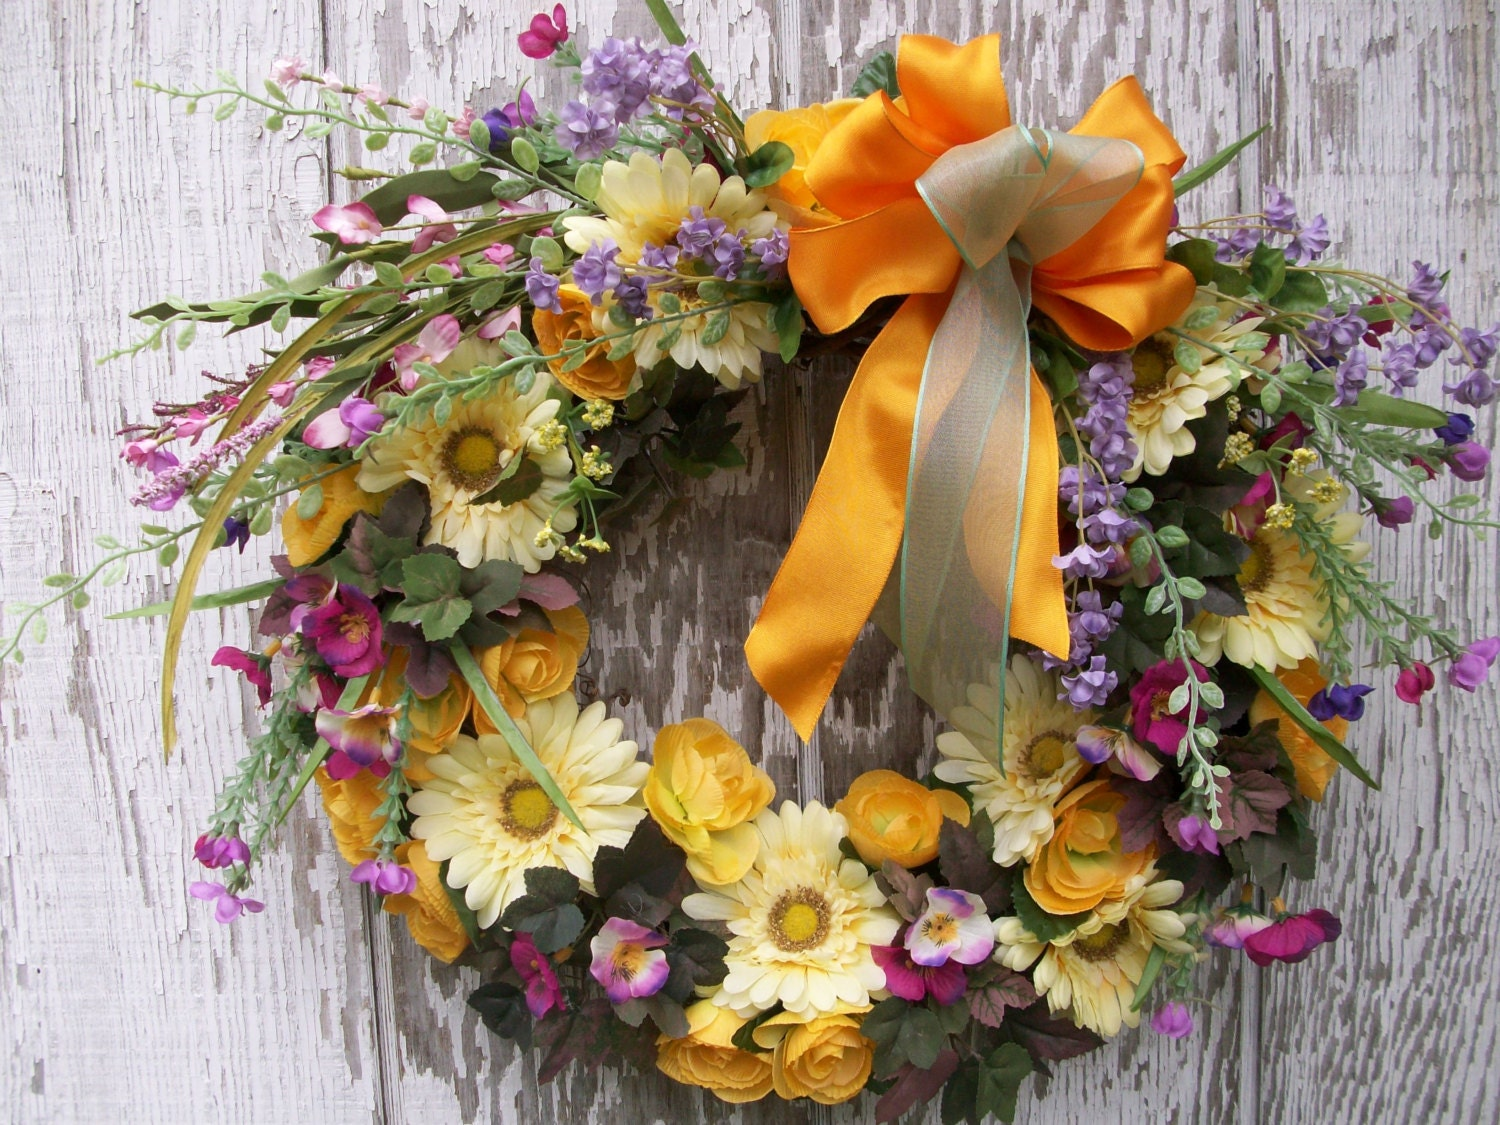 Spring summer wreath colorful door wreath daisy by for Colorful summer wreaths